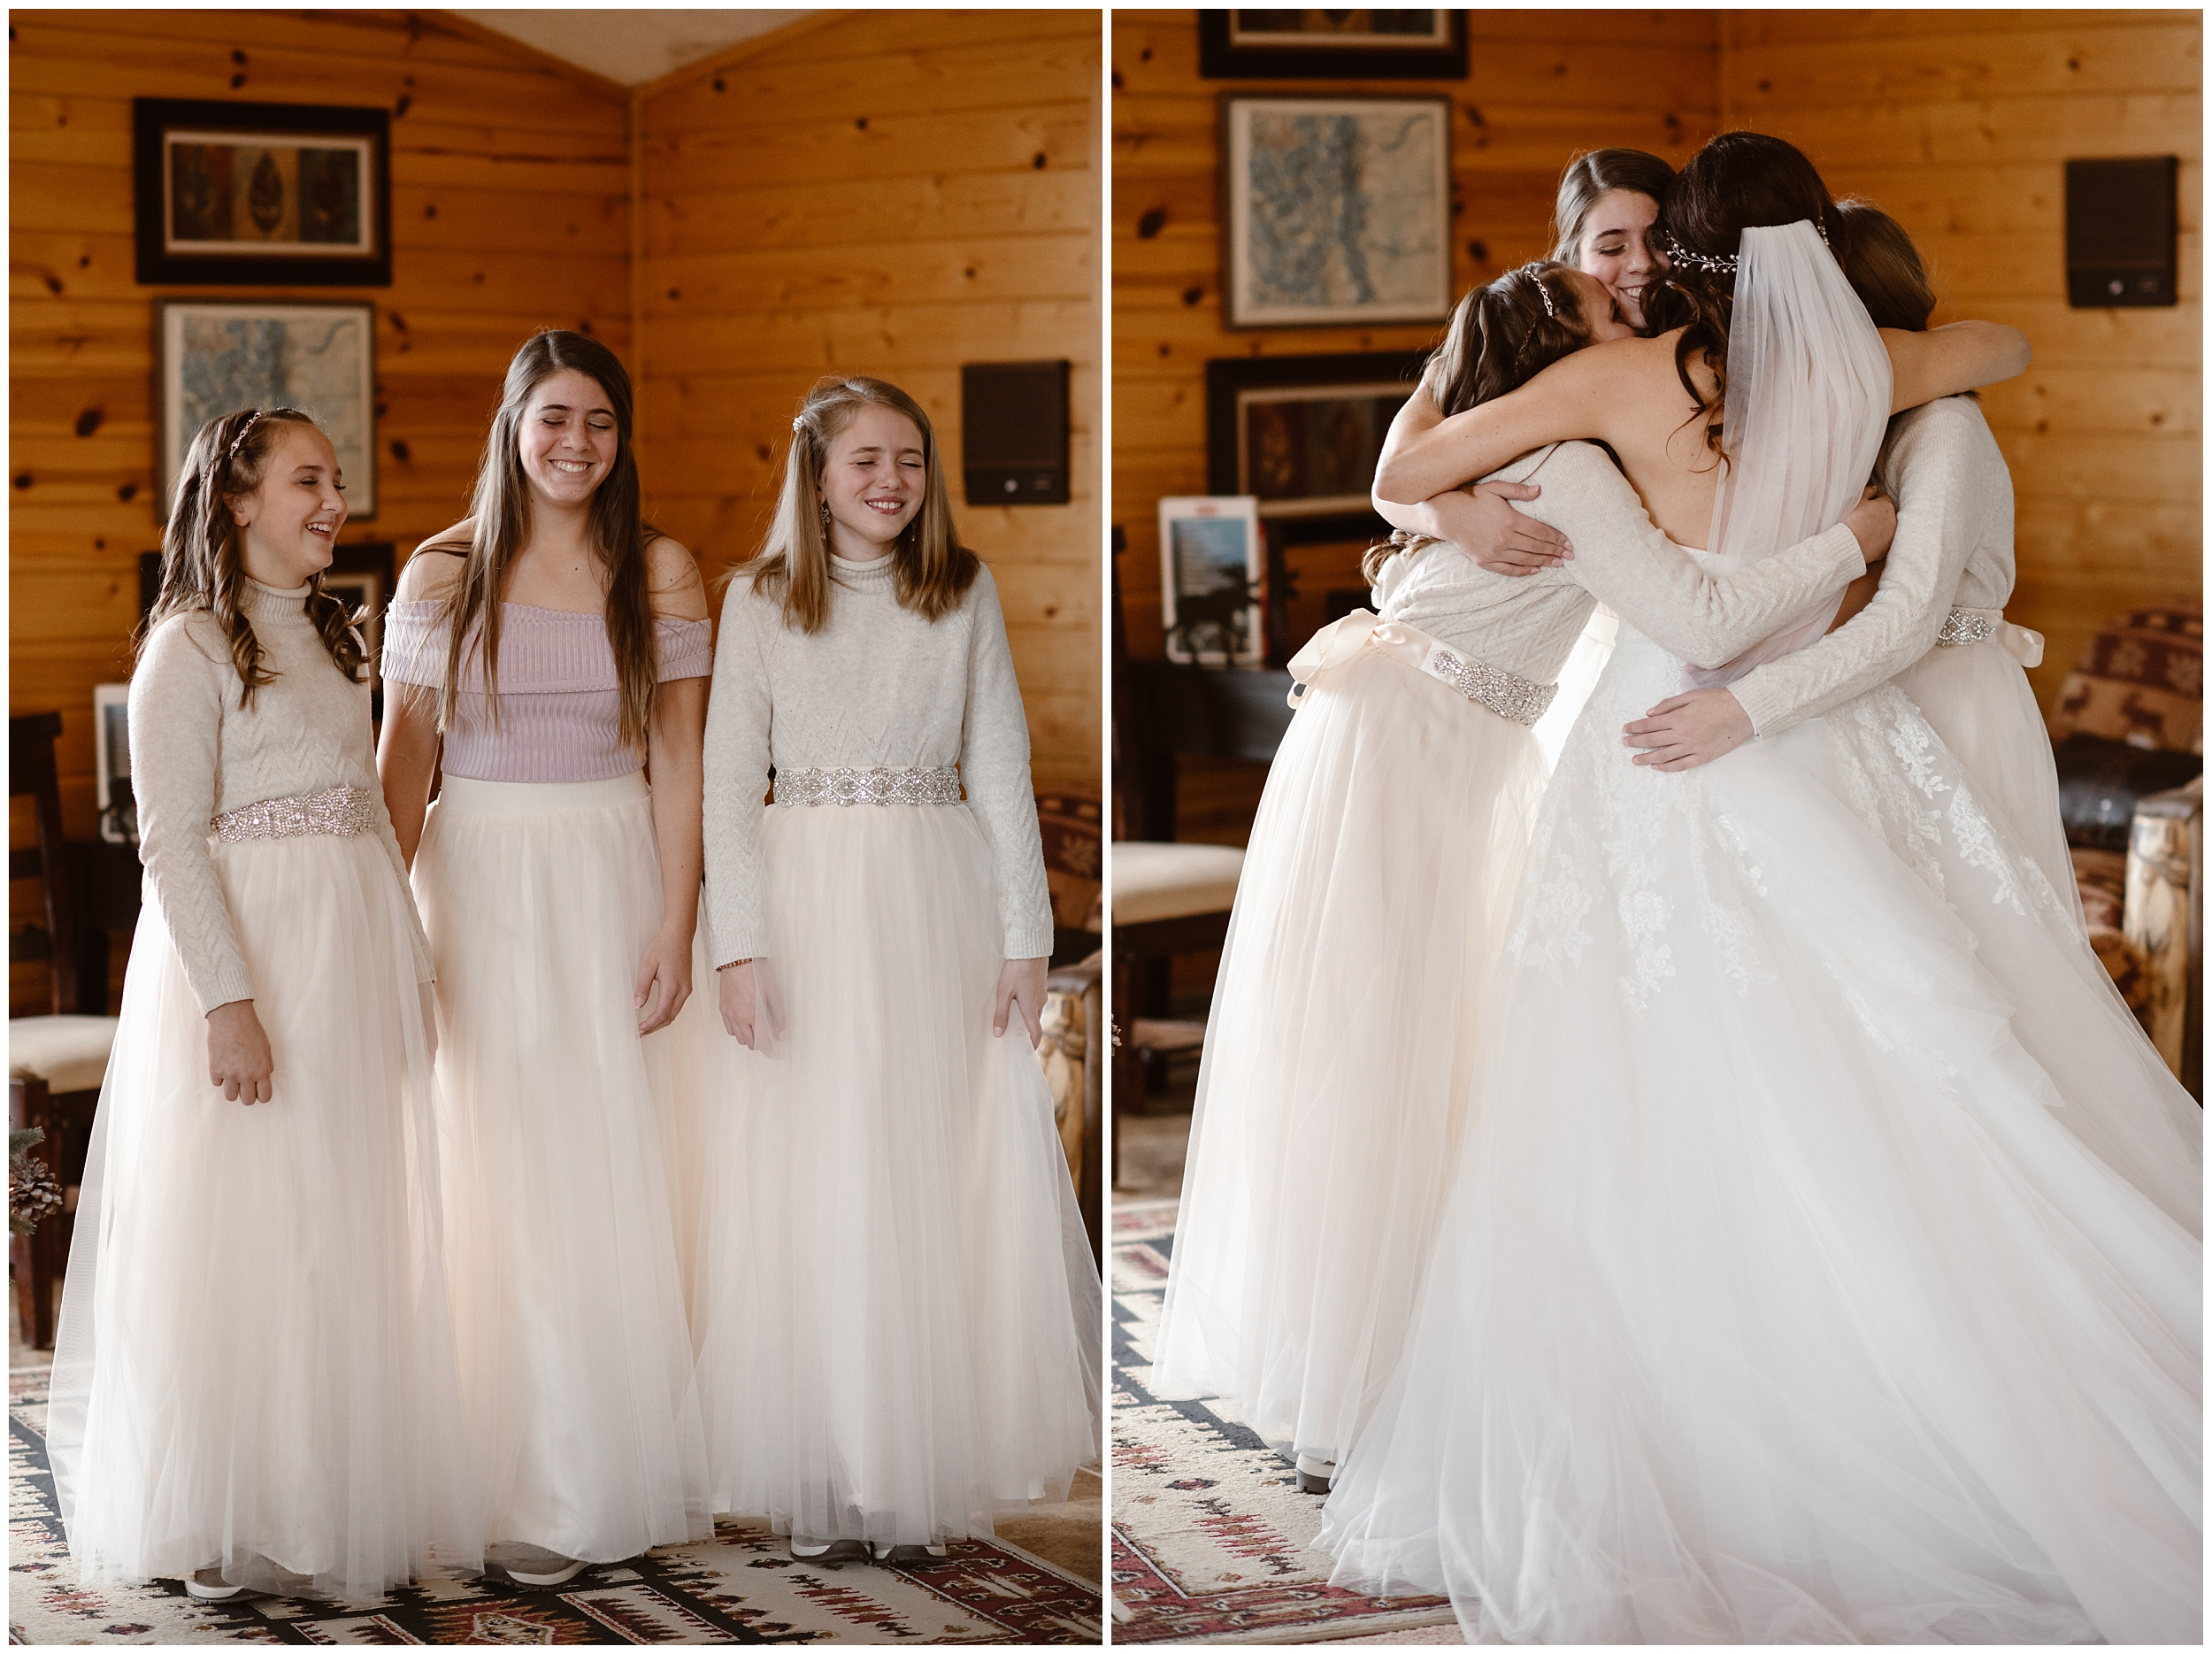 In these side-by-side elopement pictures captured by Adventure Instead, a bride does a first look with her three daughters, one of the unique eloping ideas this family wanted to include in their elopement ceremony.